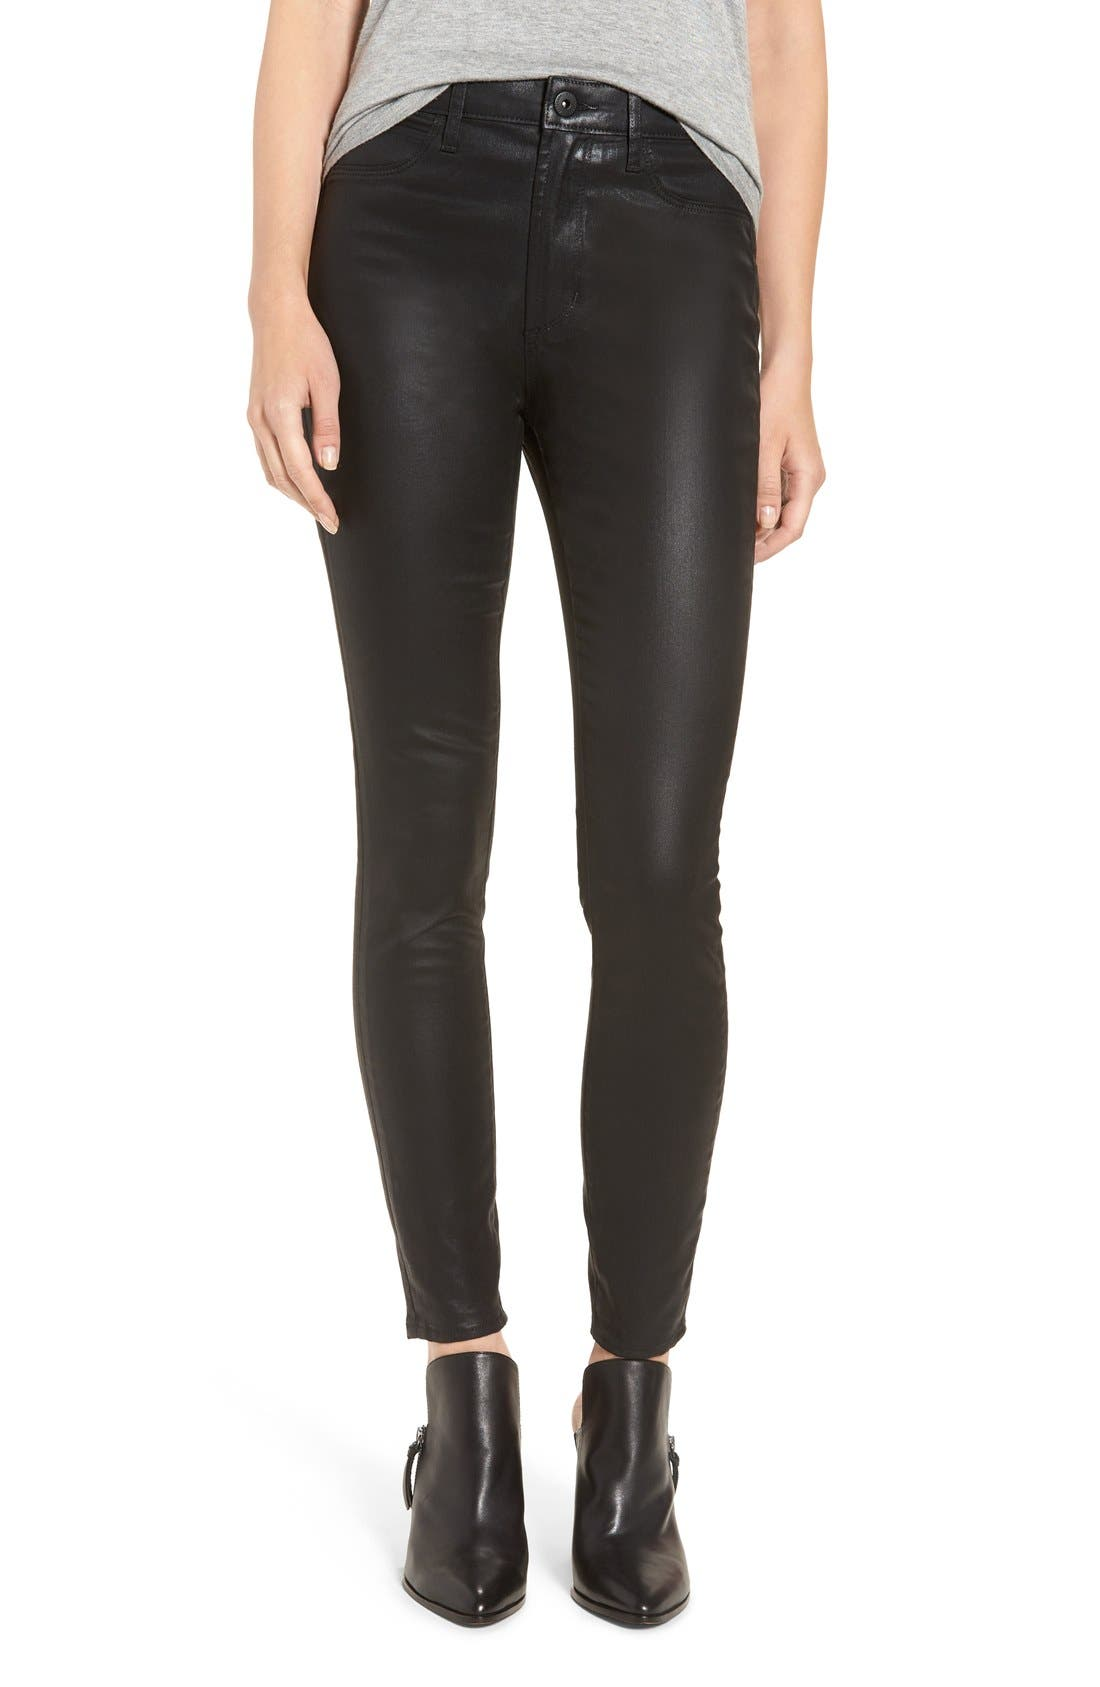 Main Image - Articles of Society 'Hailey' High Rise Coated Skinny Jeans